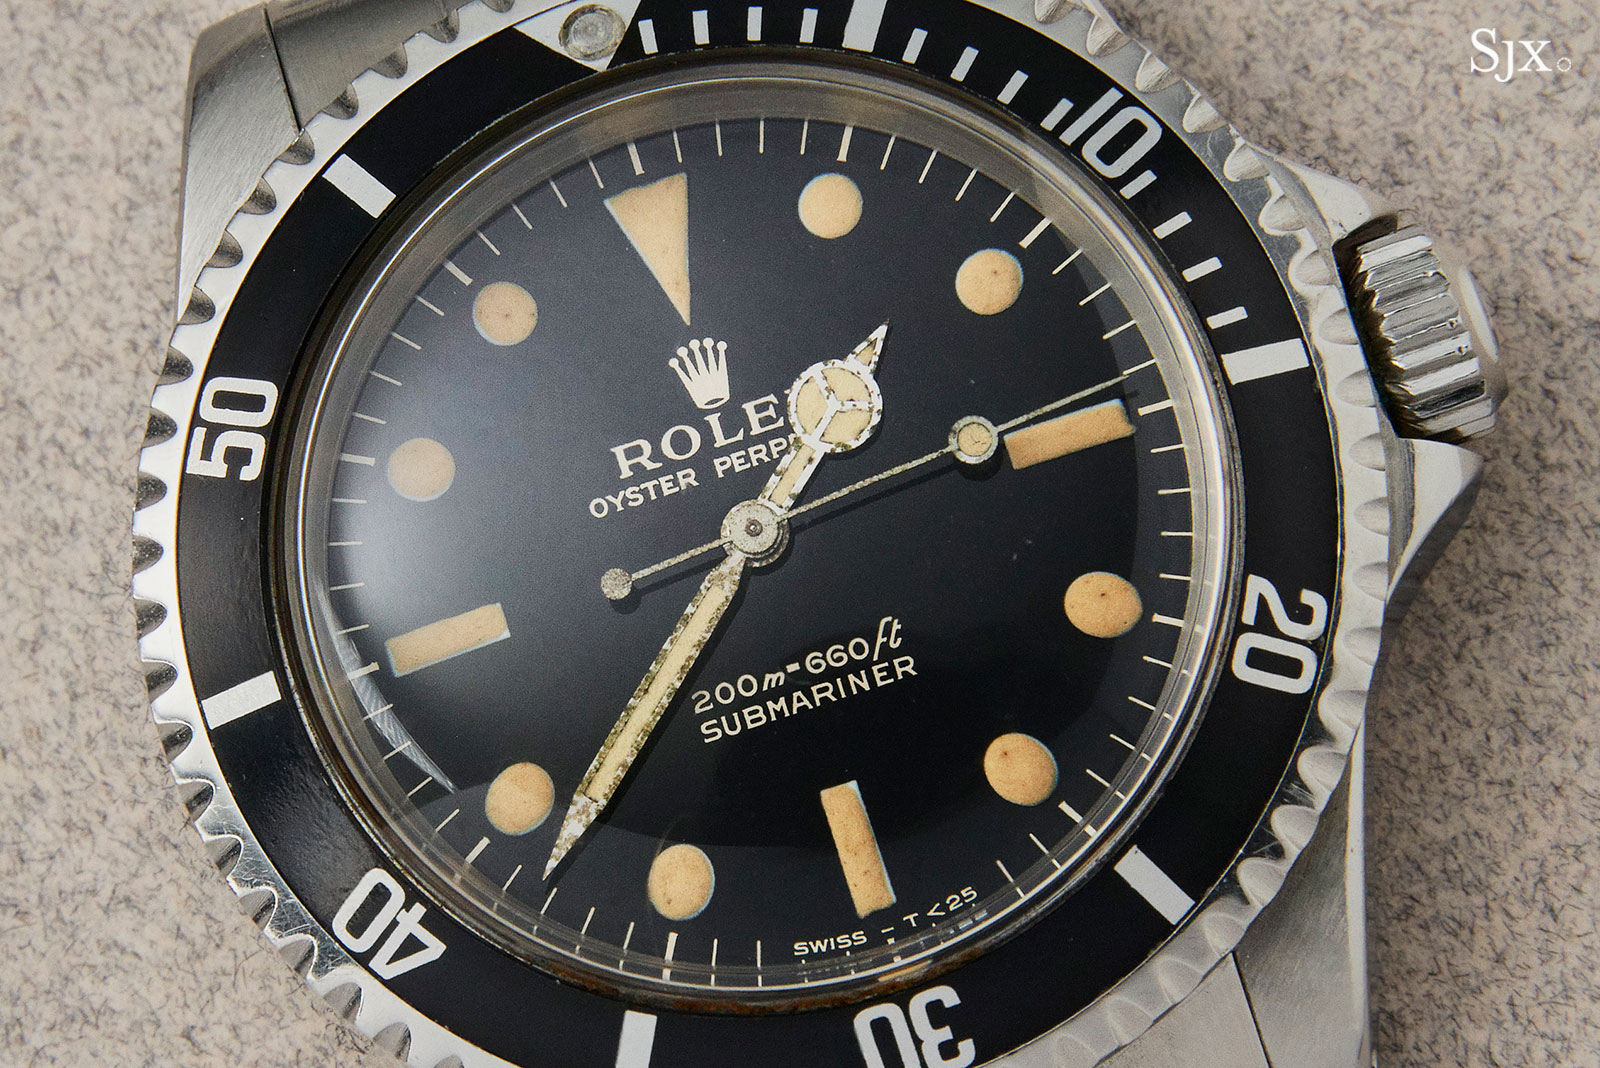 Rolex Submariner 5513 glossy dial 1